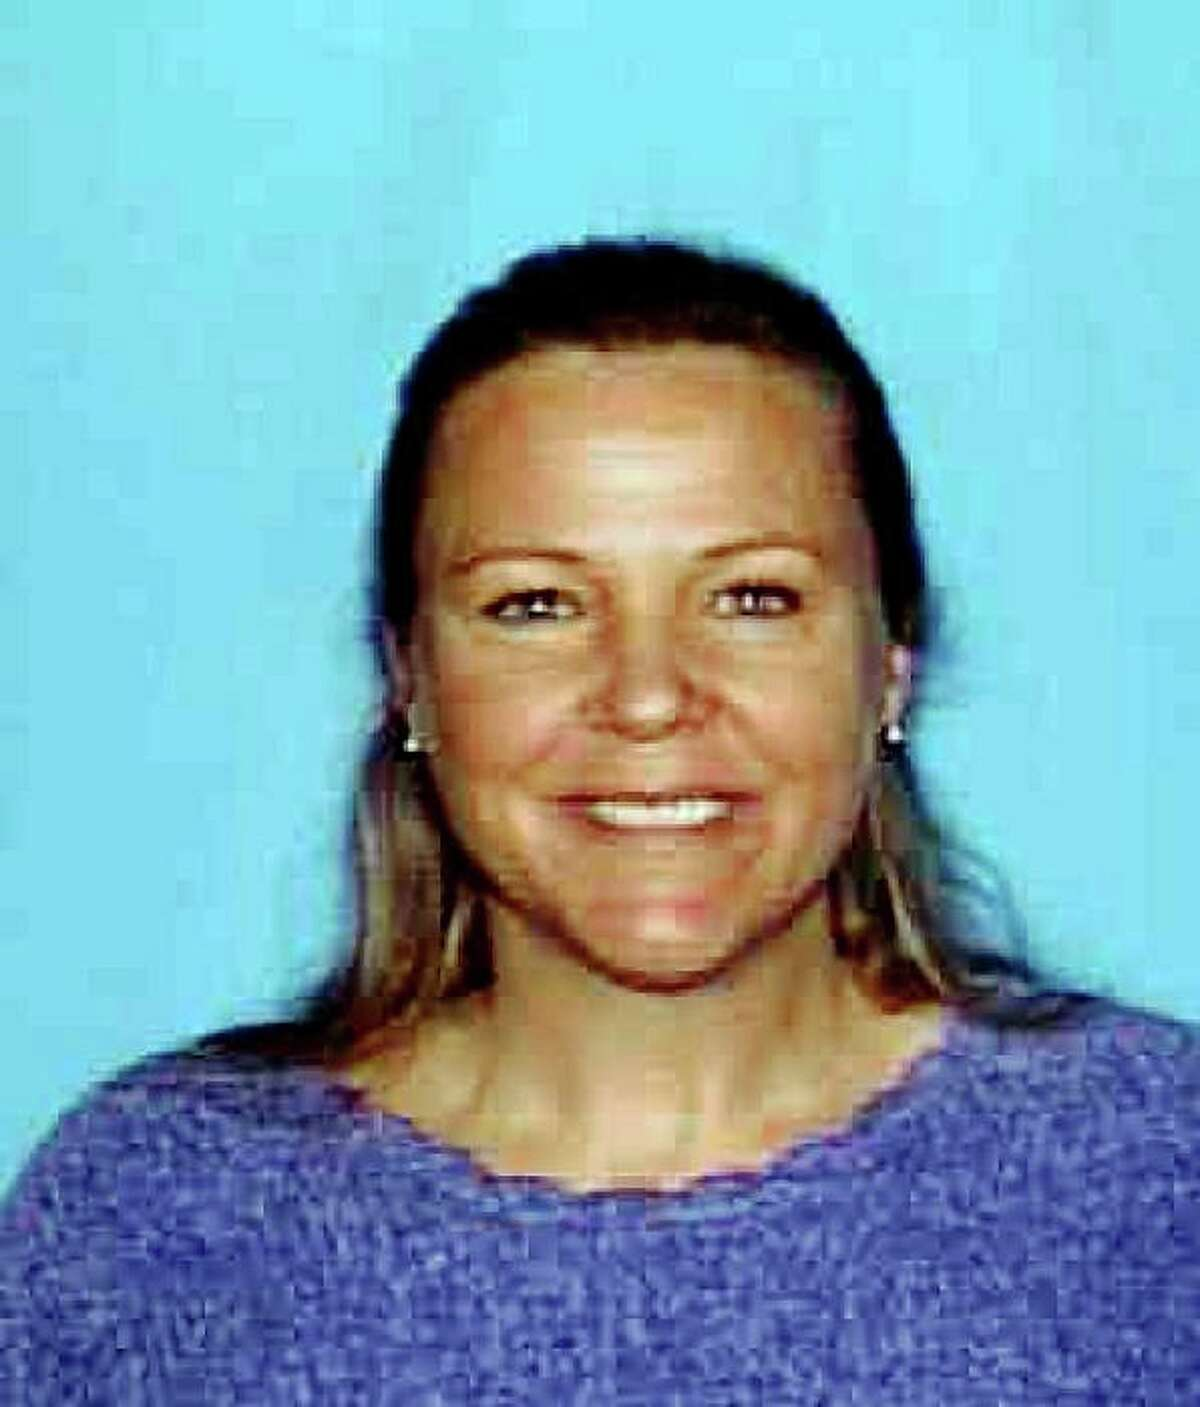 This undated picture provided by the El Dorado County Sheriff's Office shows Joanne M. Witt of El Dorado Hills, Calif. Authorities have arrested Tylar Witt, Joanne's 14-year-old daughter, and Tylar's boyfriend, Steven Colver, 19, in her alleged murder. (AP Photo/El Dorado County Sheriff's Office)